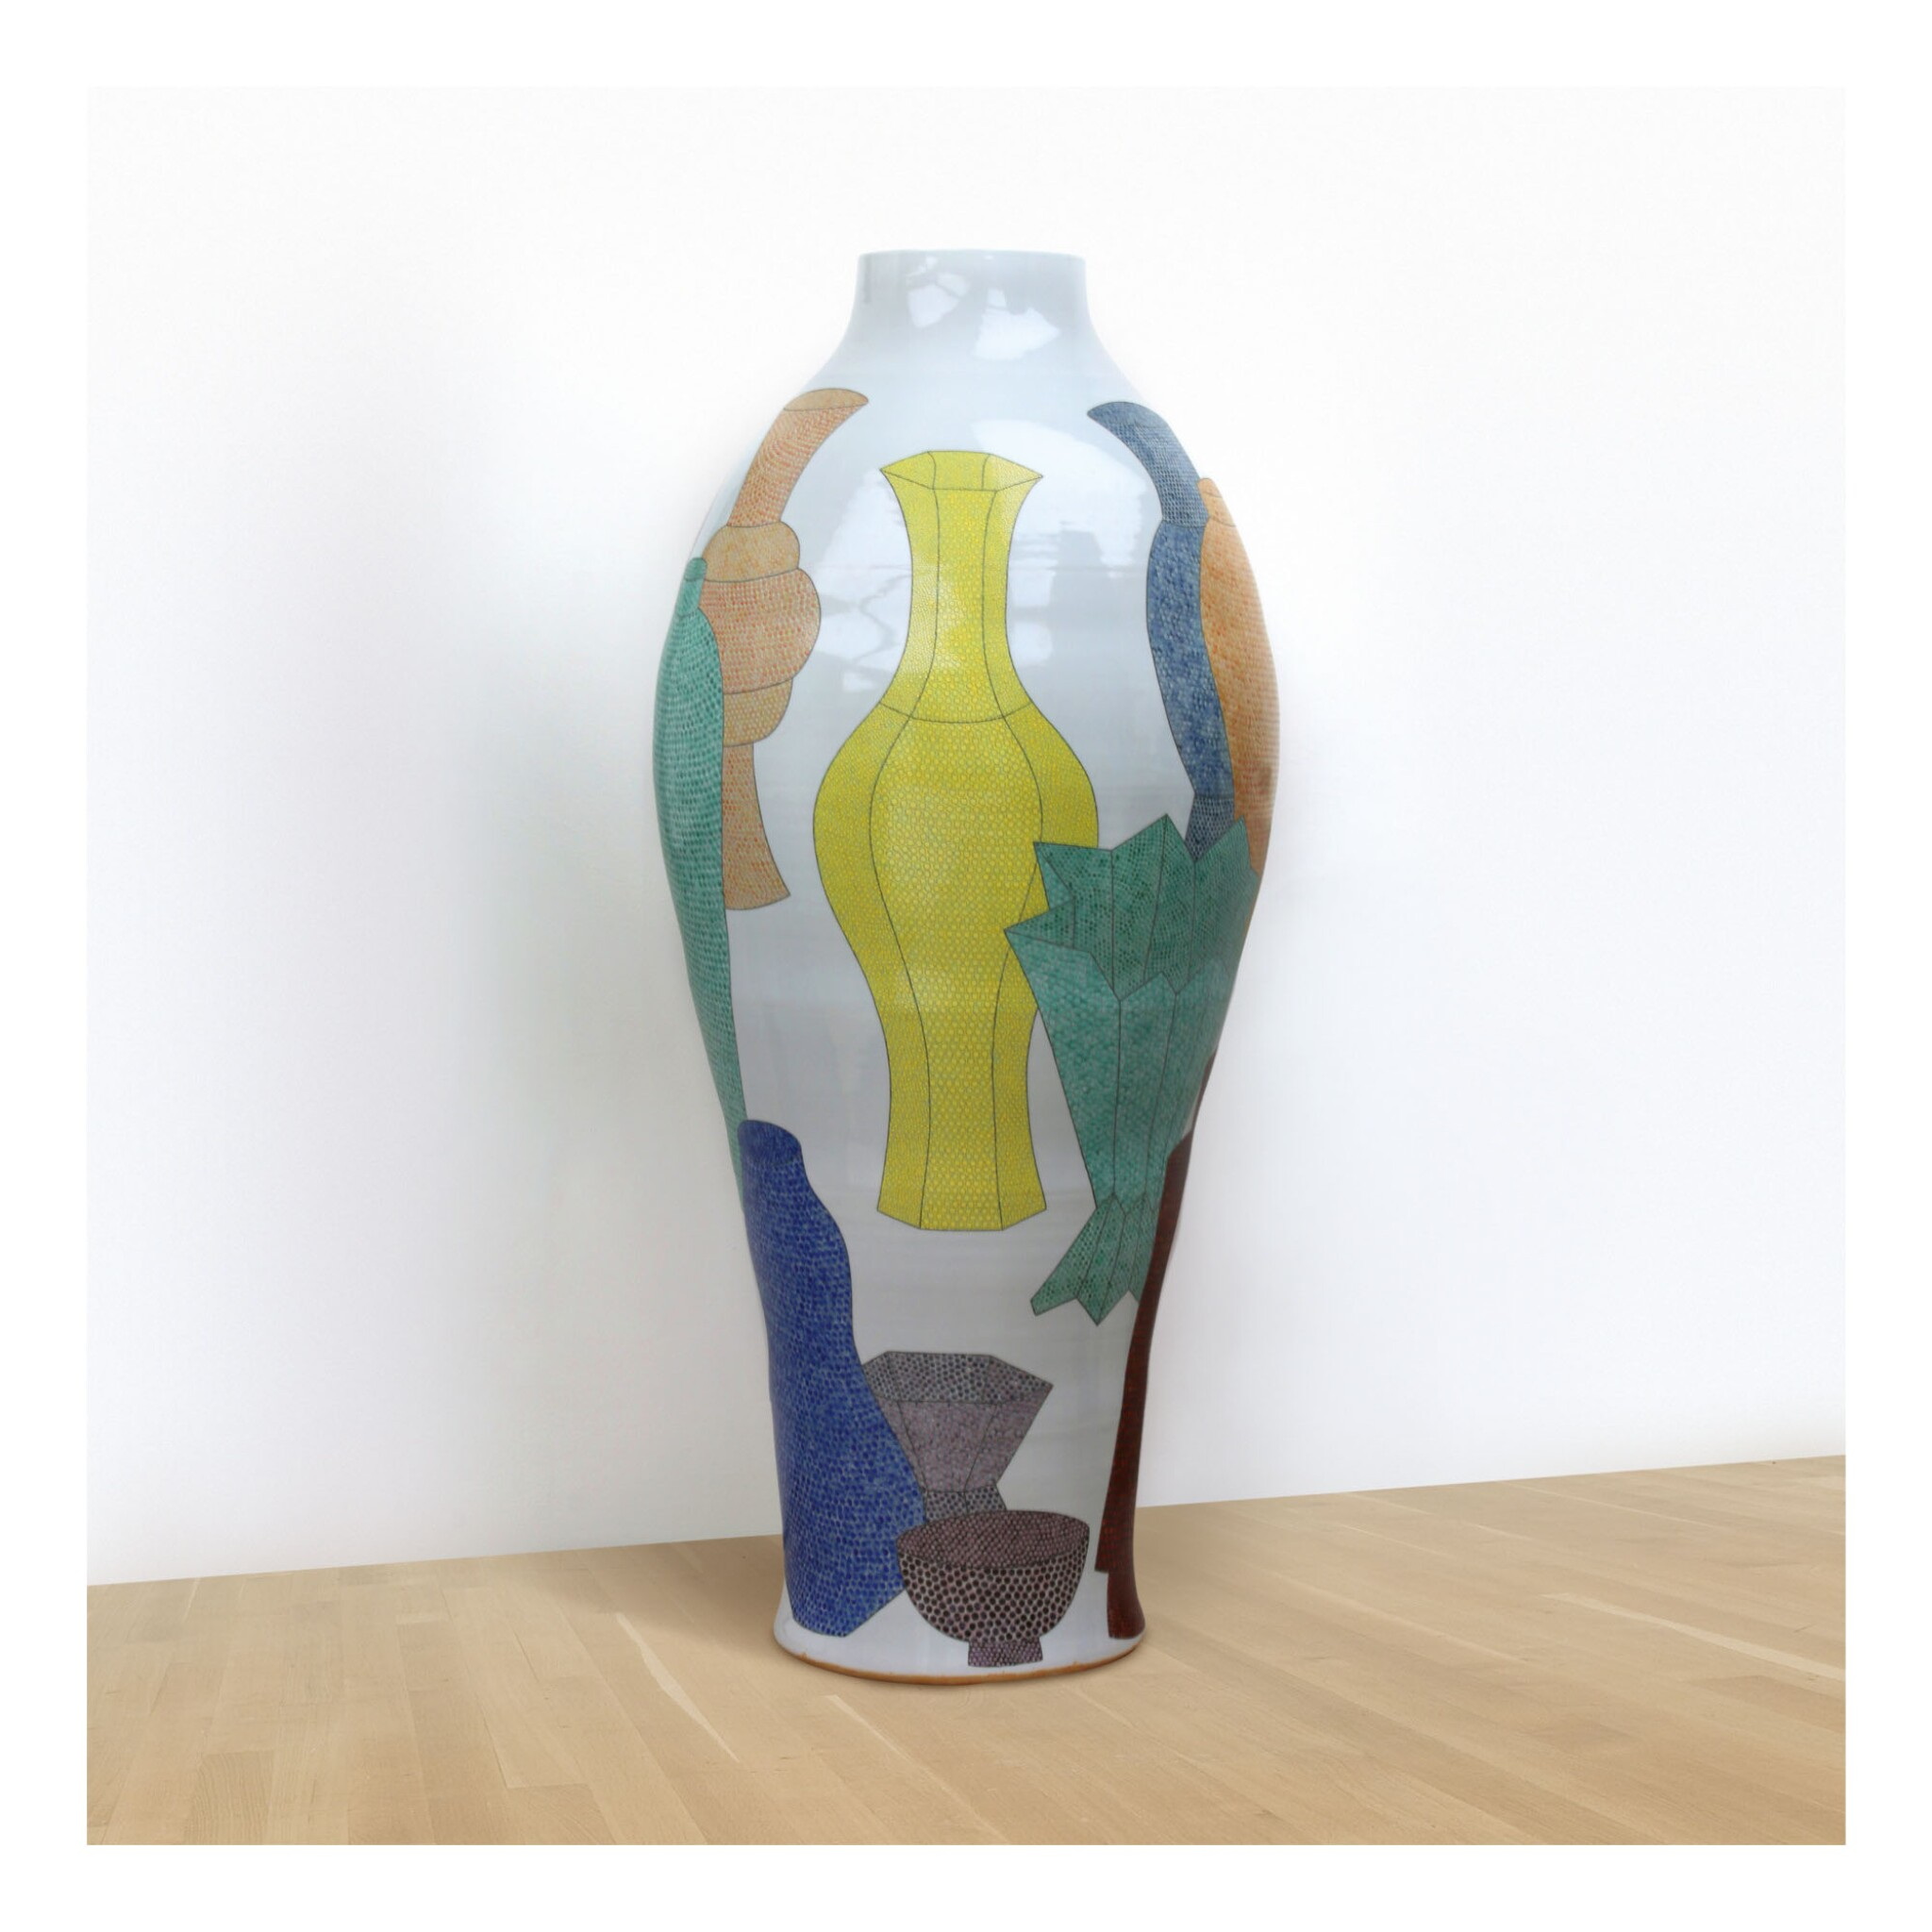 View full screen - View 1 of Lot 500. A MASSIVE FELICITY AYLIEFF VASE: POTS ON POTS II CIRCA 2014 .